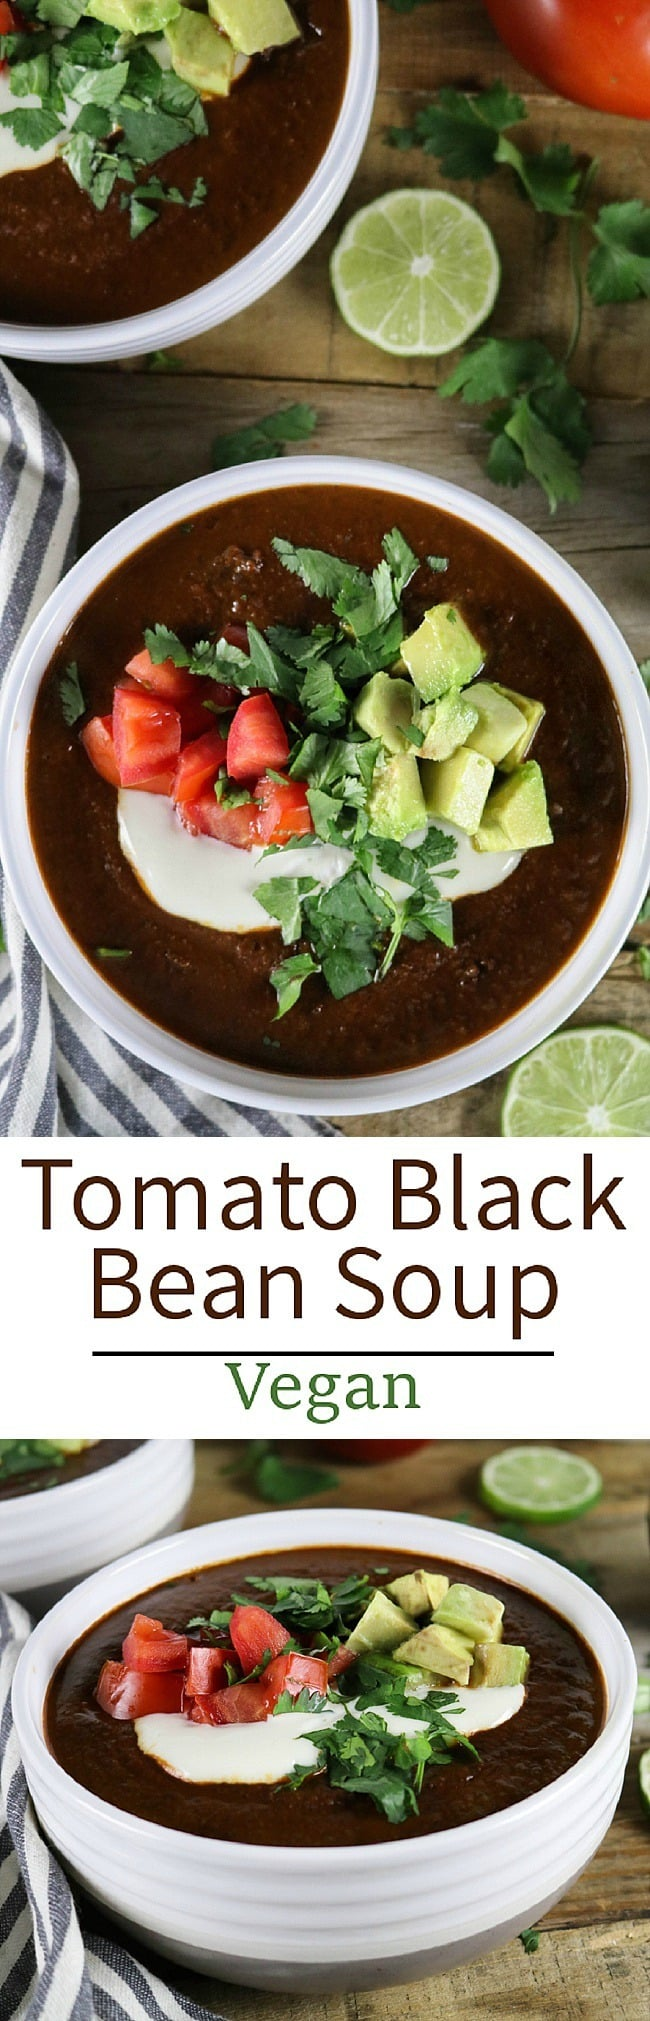 ... here in Jason's Tomato Black Bean Soup recipe for you to try. Enjoy